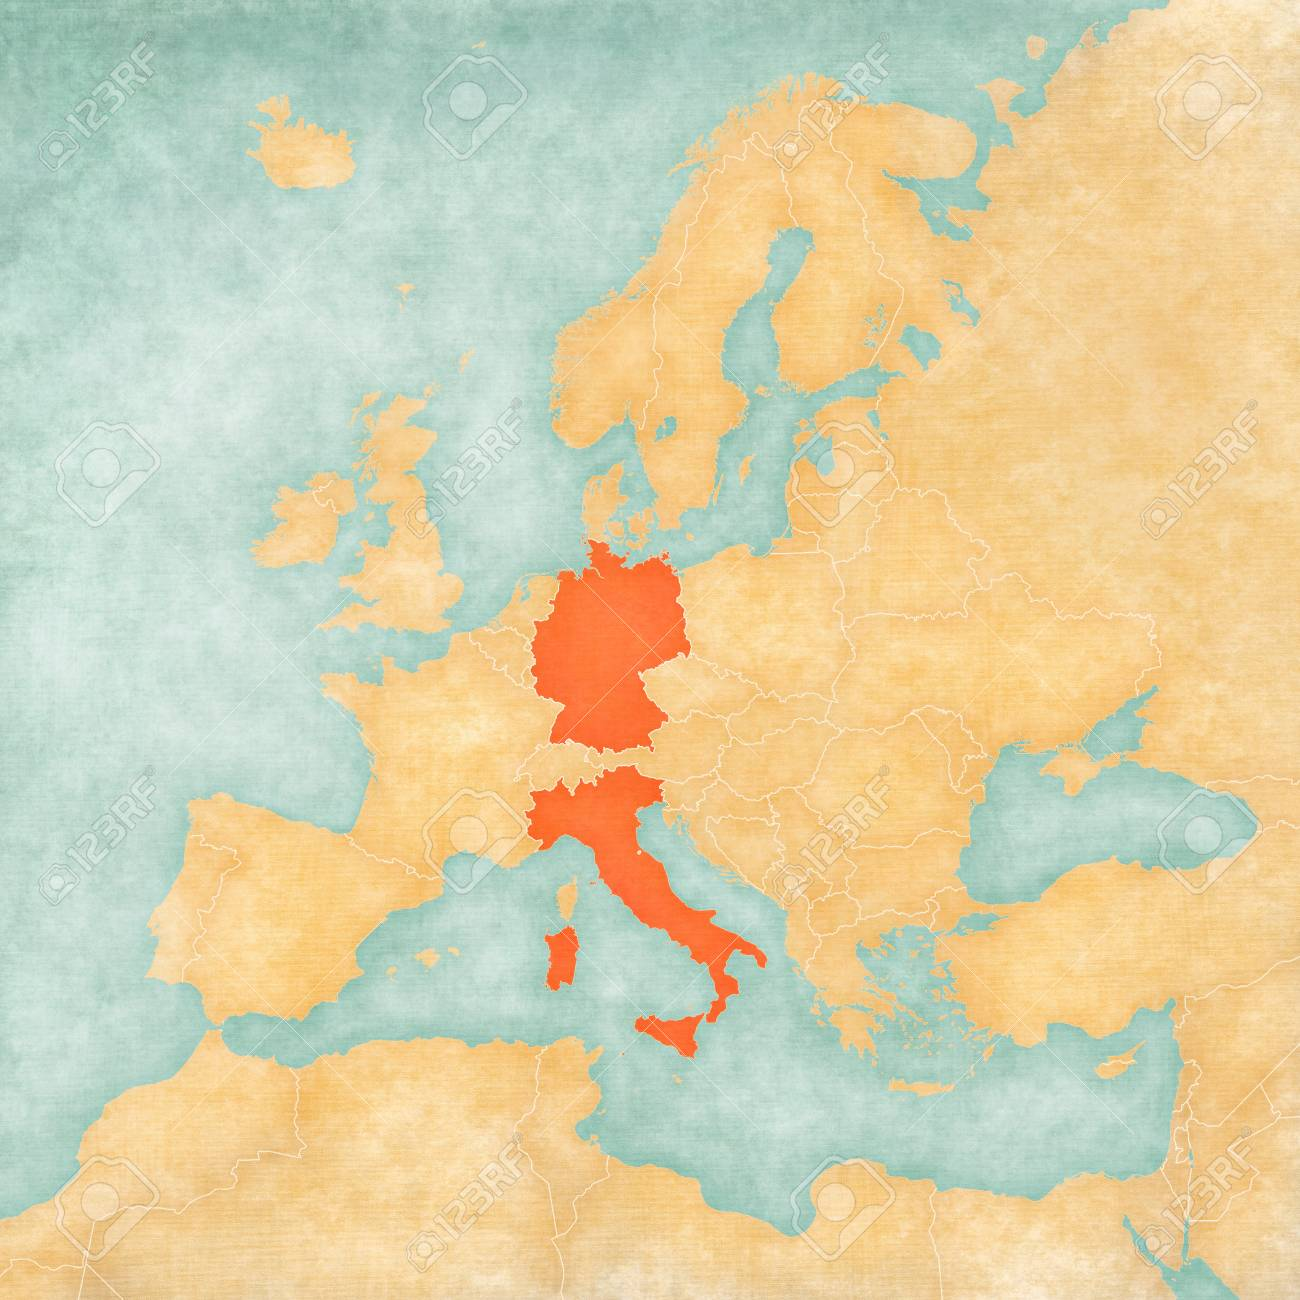 Map Of Germany And Italy.Germany And Italy On The Map Of Europe In Soft Grunge And Vintage